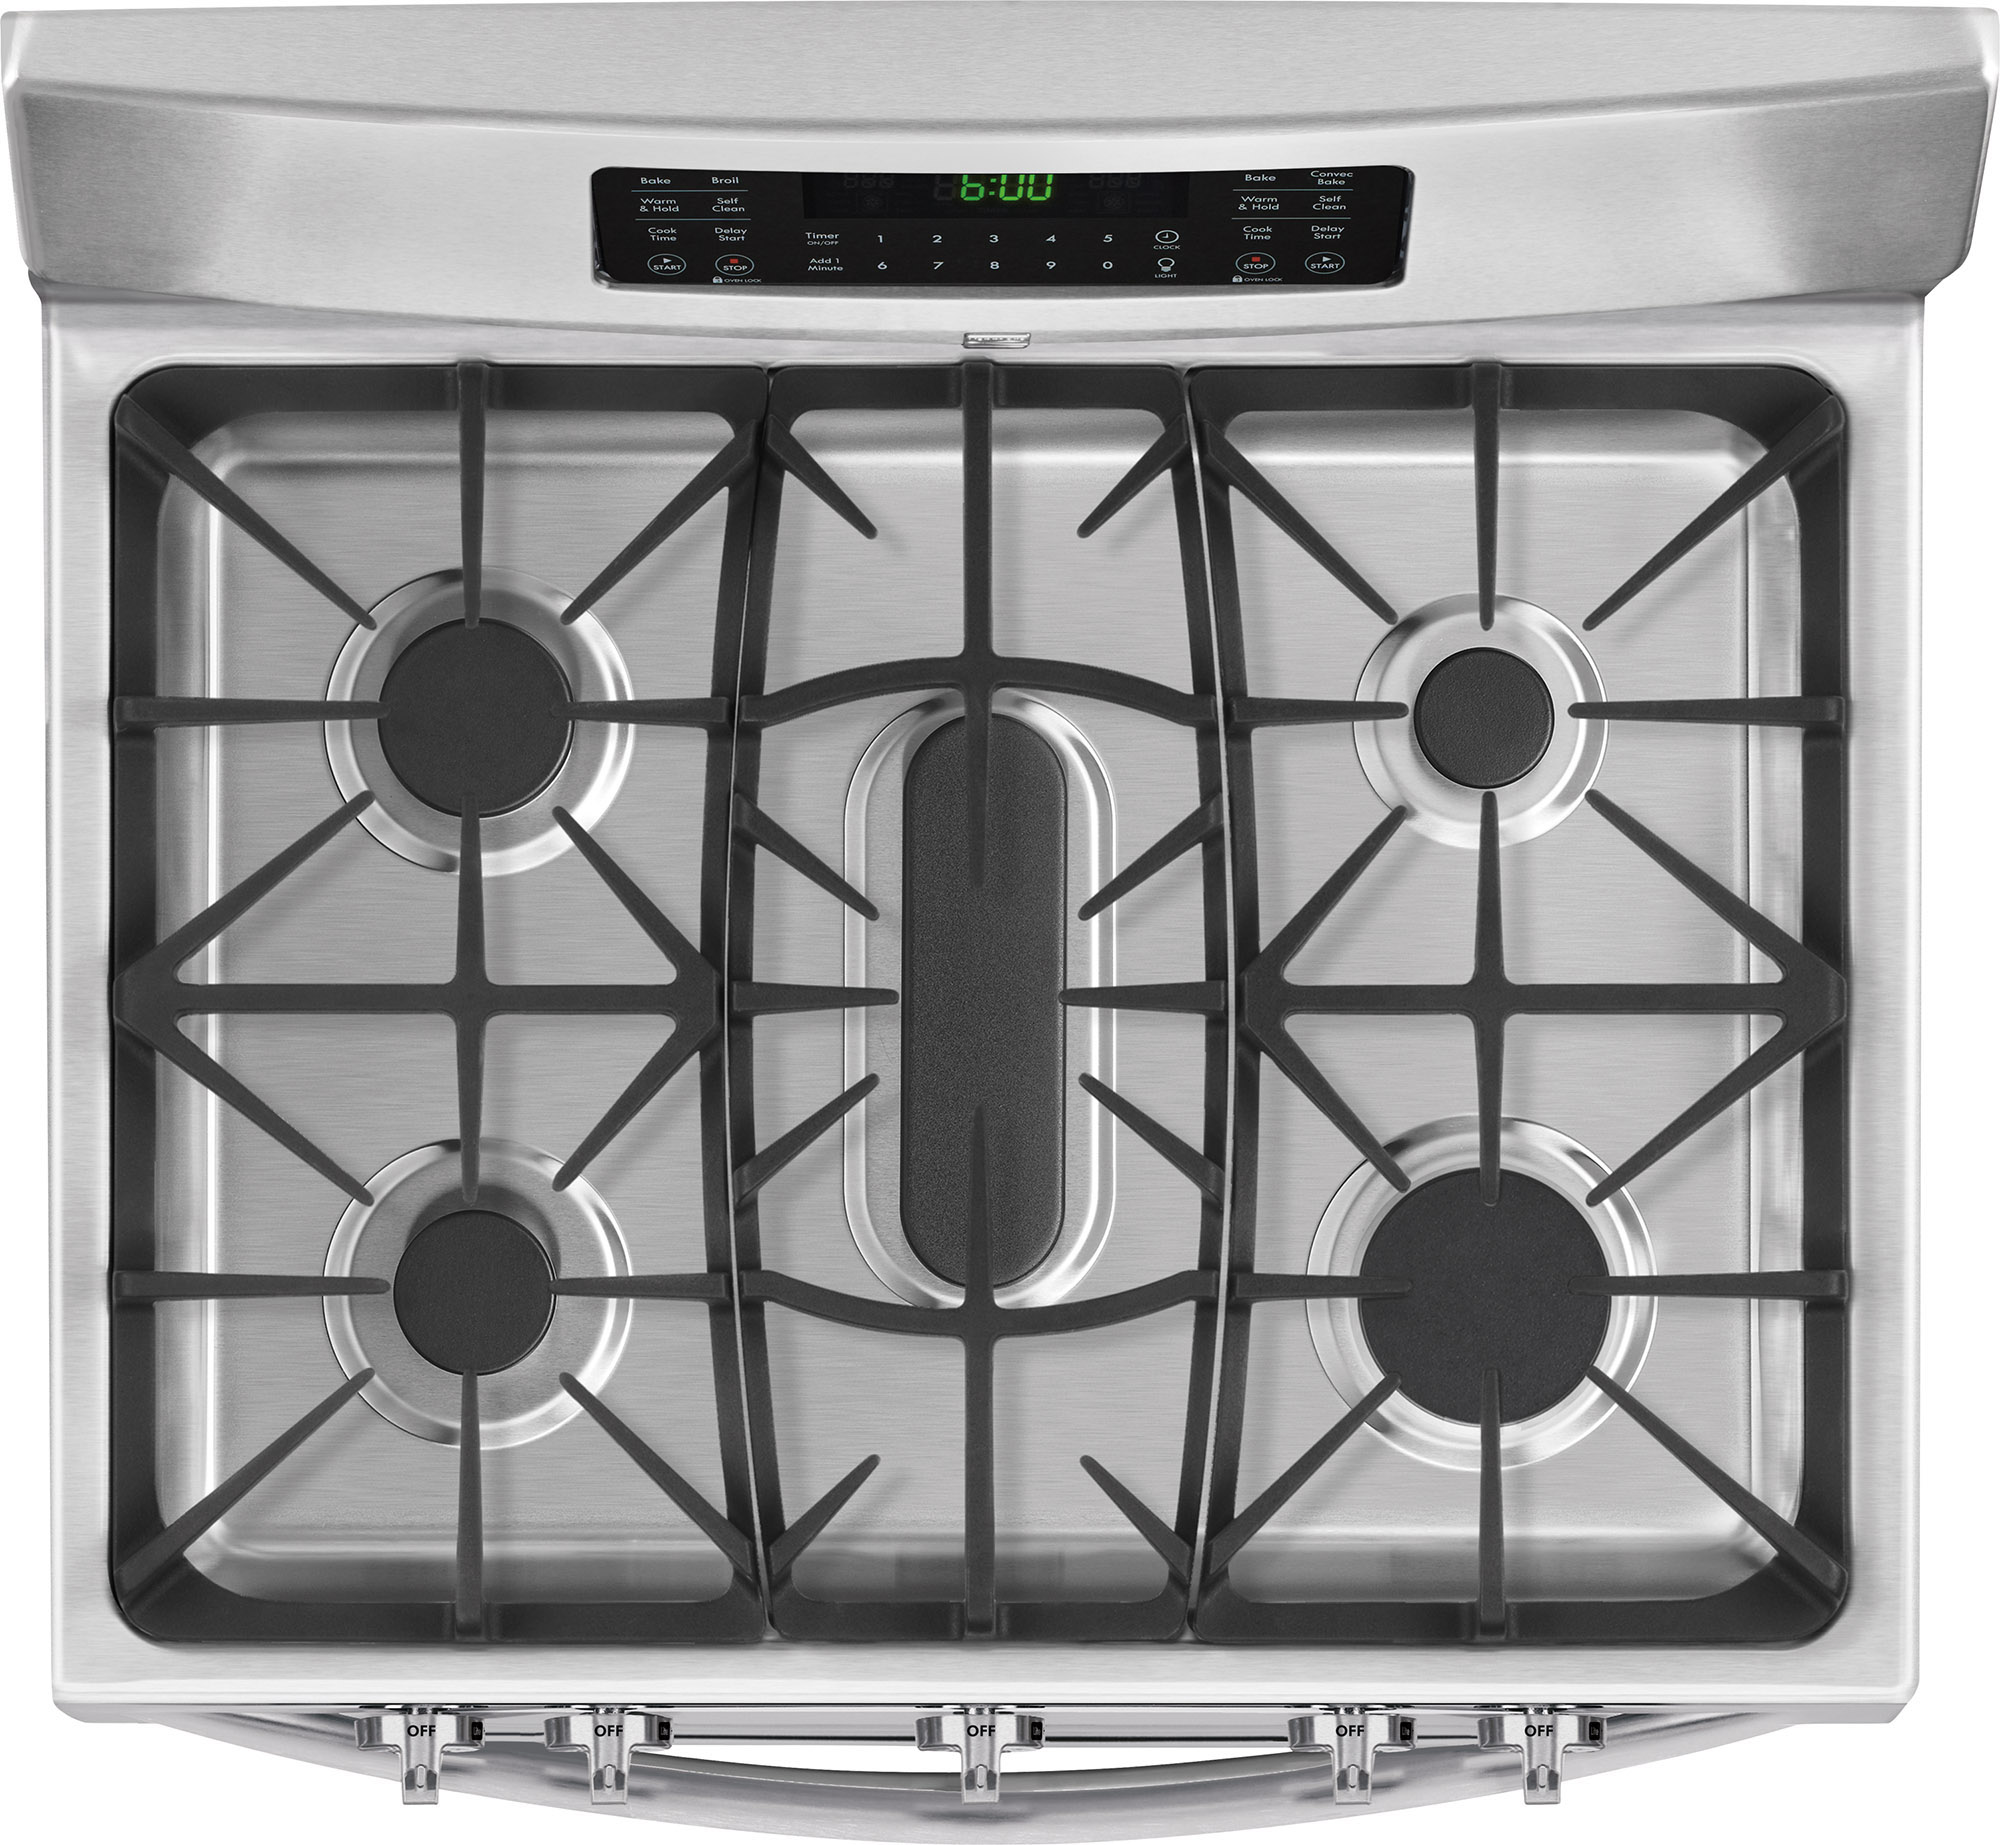 Kenmore 78143 5.9 cu. ft. Double-Oven Gas Range - Stainless Steel